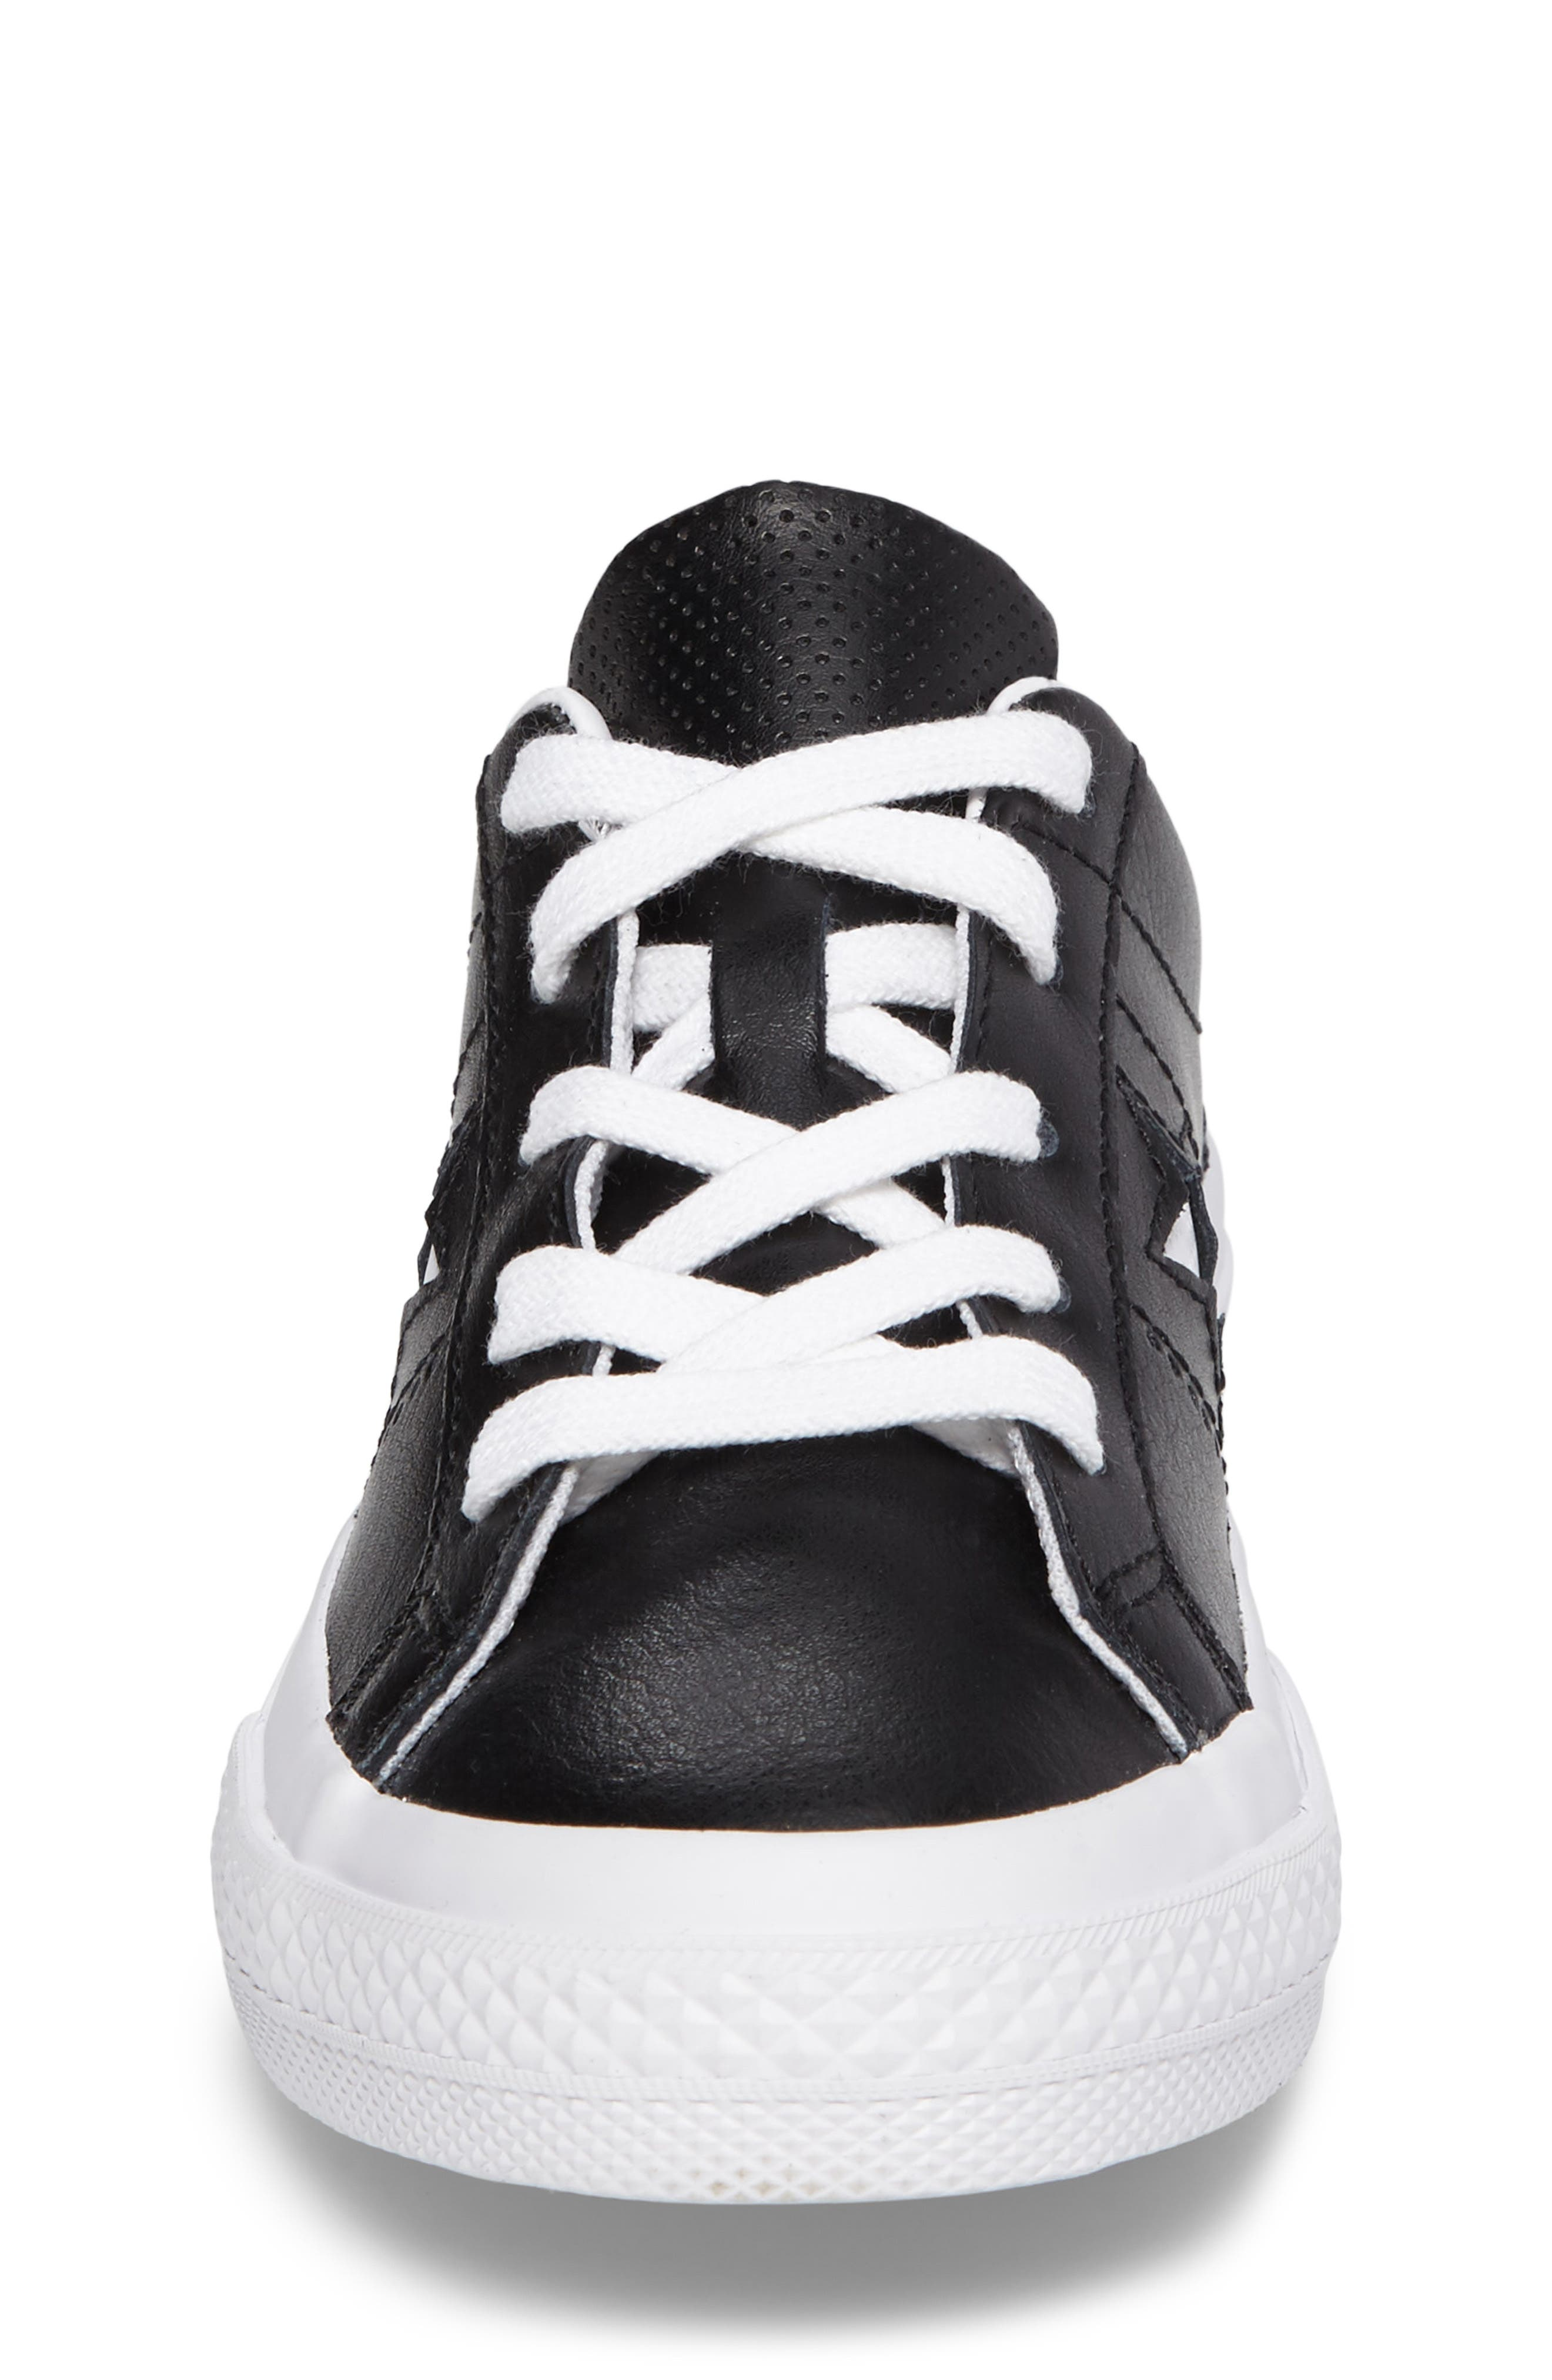 Chuck Taylor<sup>®</sup> All Star<sup>®</sup> One Star Sneaker,                             Alternate thumbnail 4, color,                             001